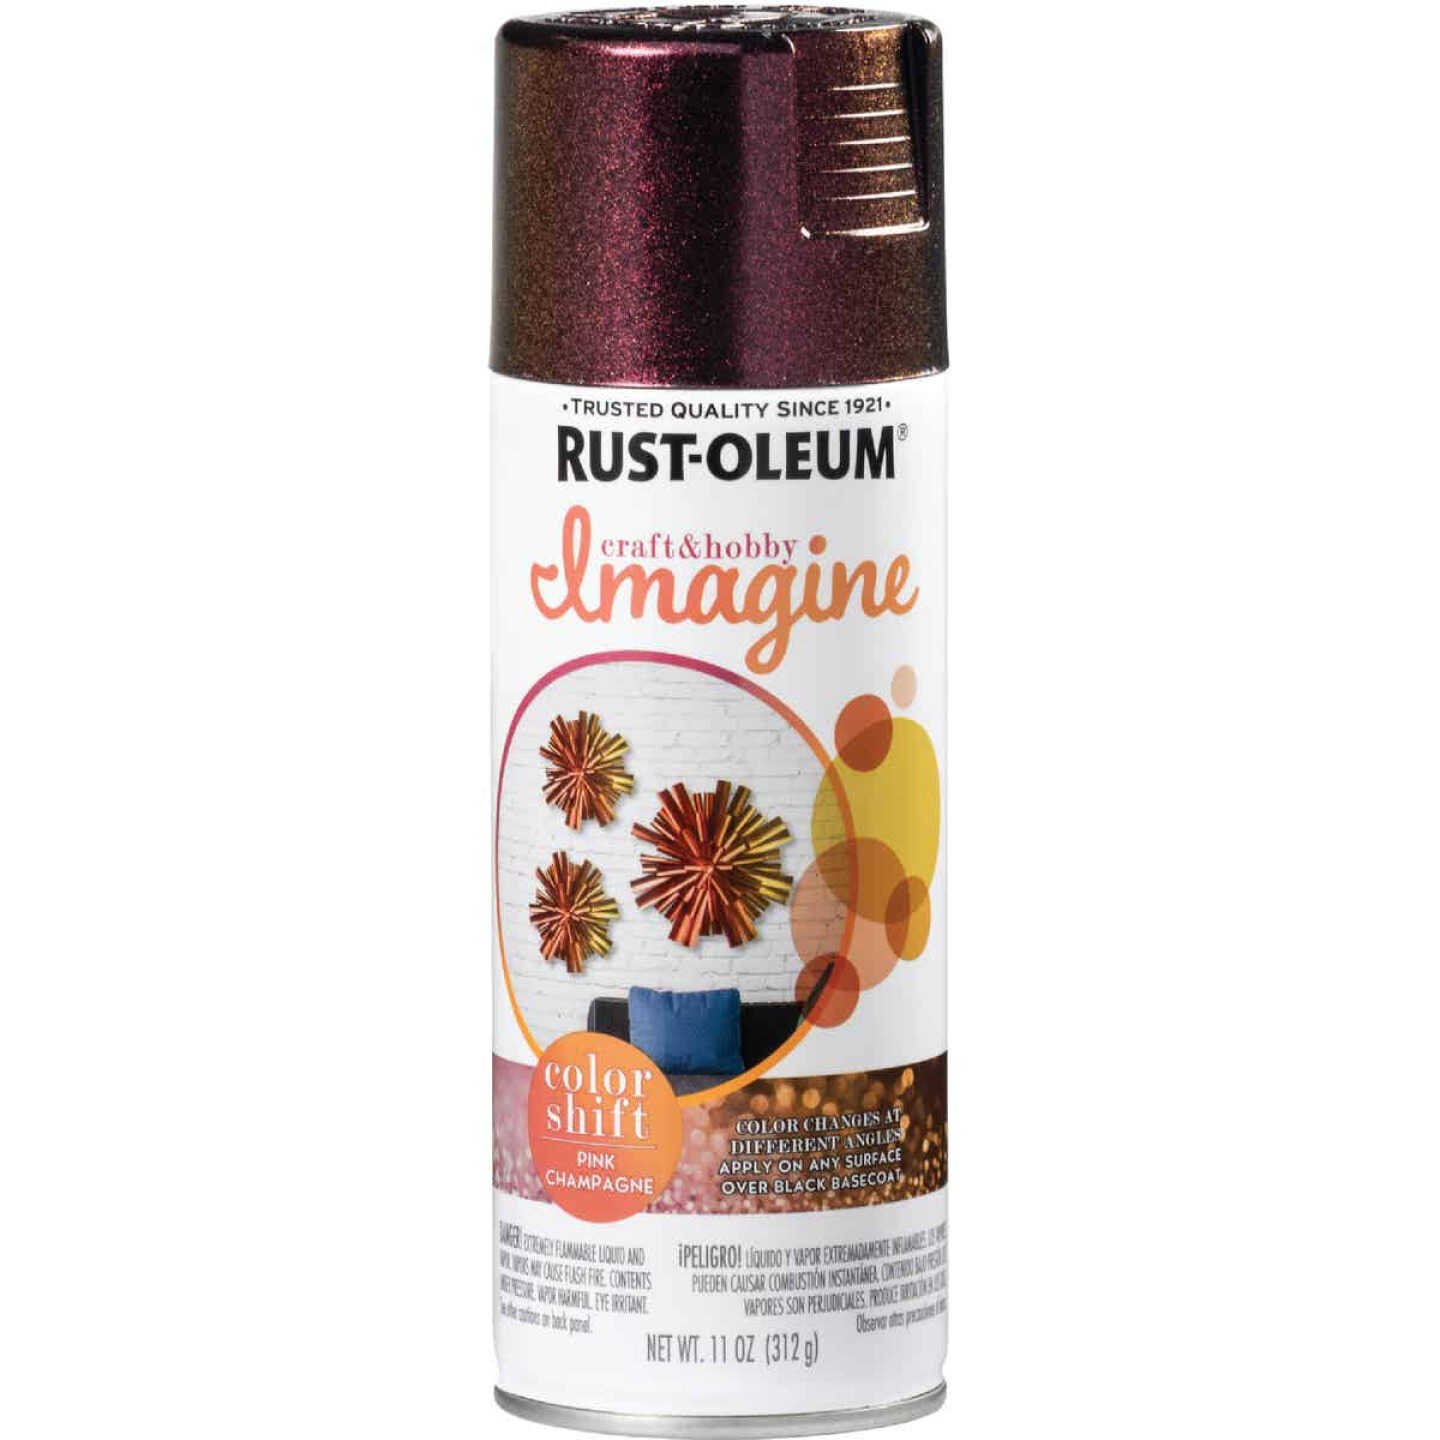 Rust-Oleum 11 Oz. Champagne Pink Imagine Craft & Hobby Color Shift Spray Paint Image 1